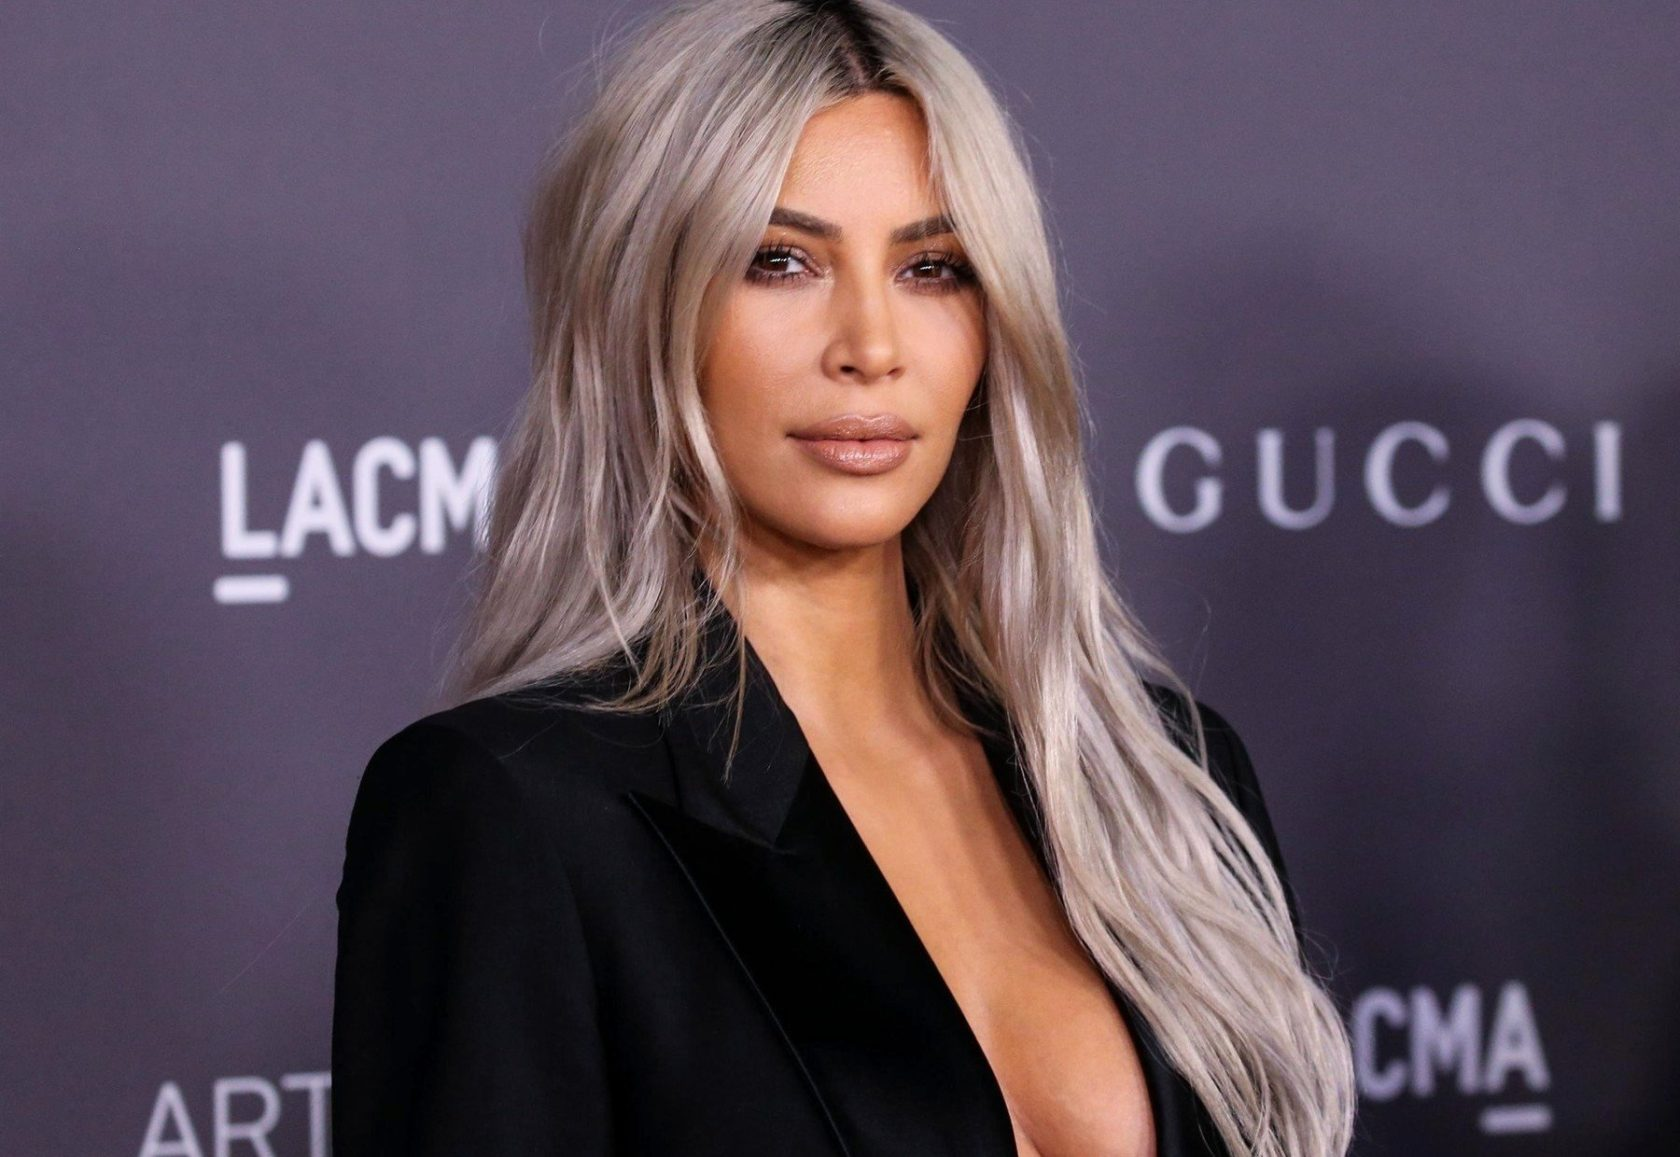 Los Angeles, CA - Guests at the 2017 LACMA Art + Film Gala held at the Los Angeles County Museum of Art on November 4, 2017 in Los Angeles, California. Pictured: Kim Kardashian West BACKGRID USA 4 NOVEMBER 2017, Image: 354652426, License: Rights-managed, Restrictions: , Model Release: no, Credit line: Profimedia, AKM-GSI